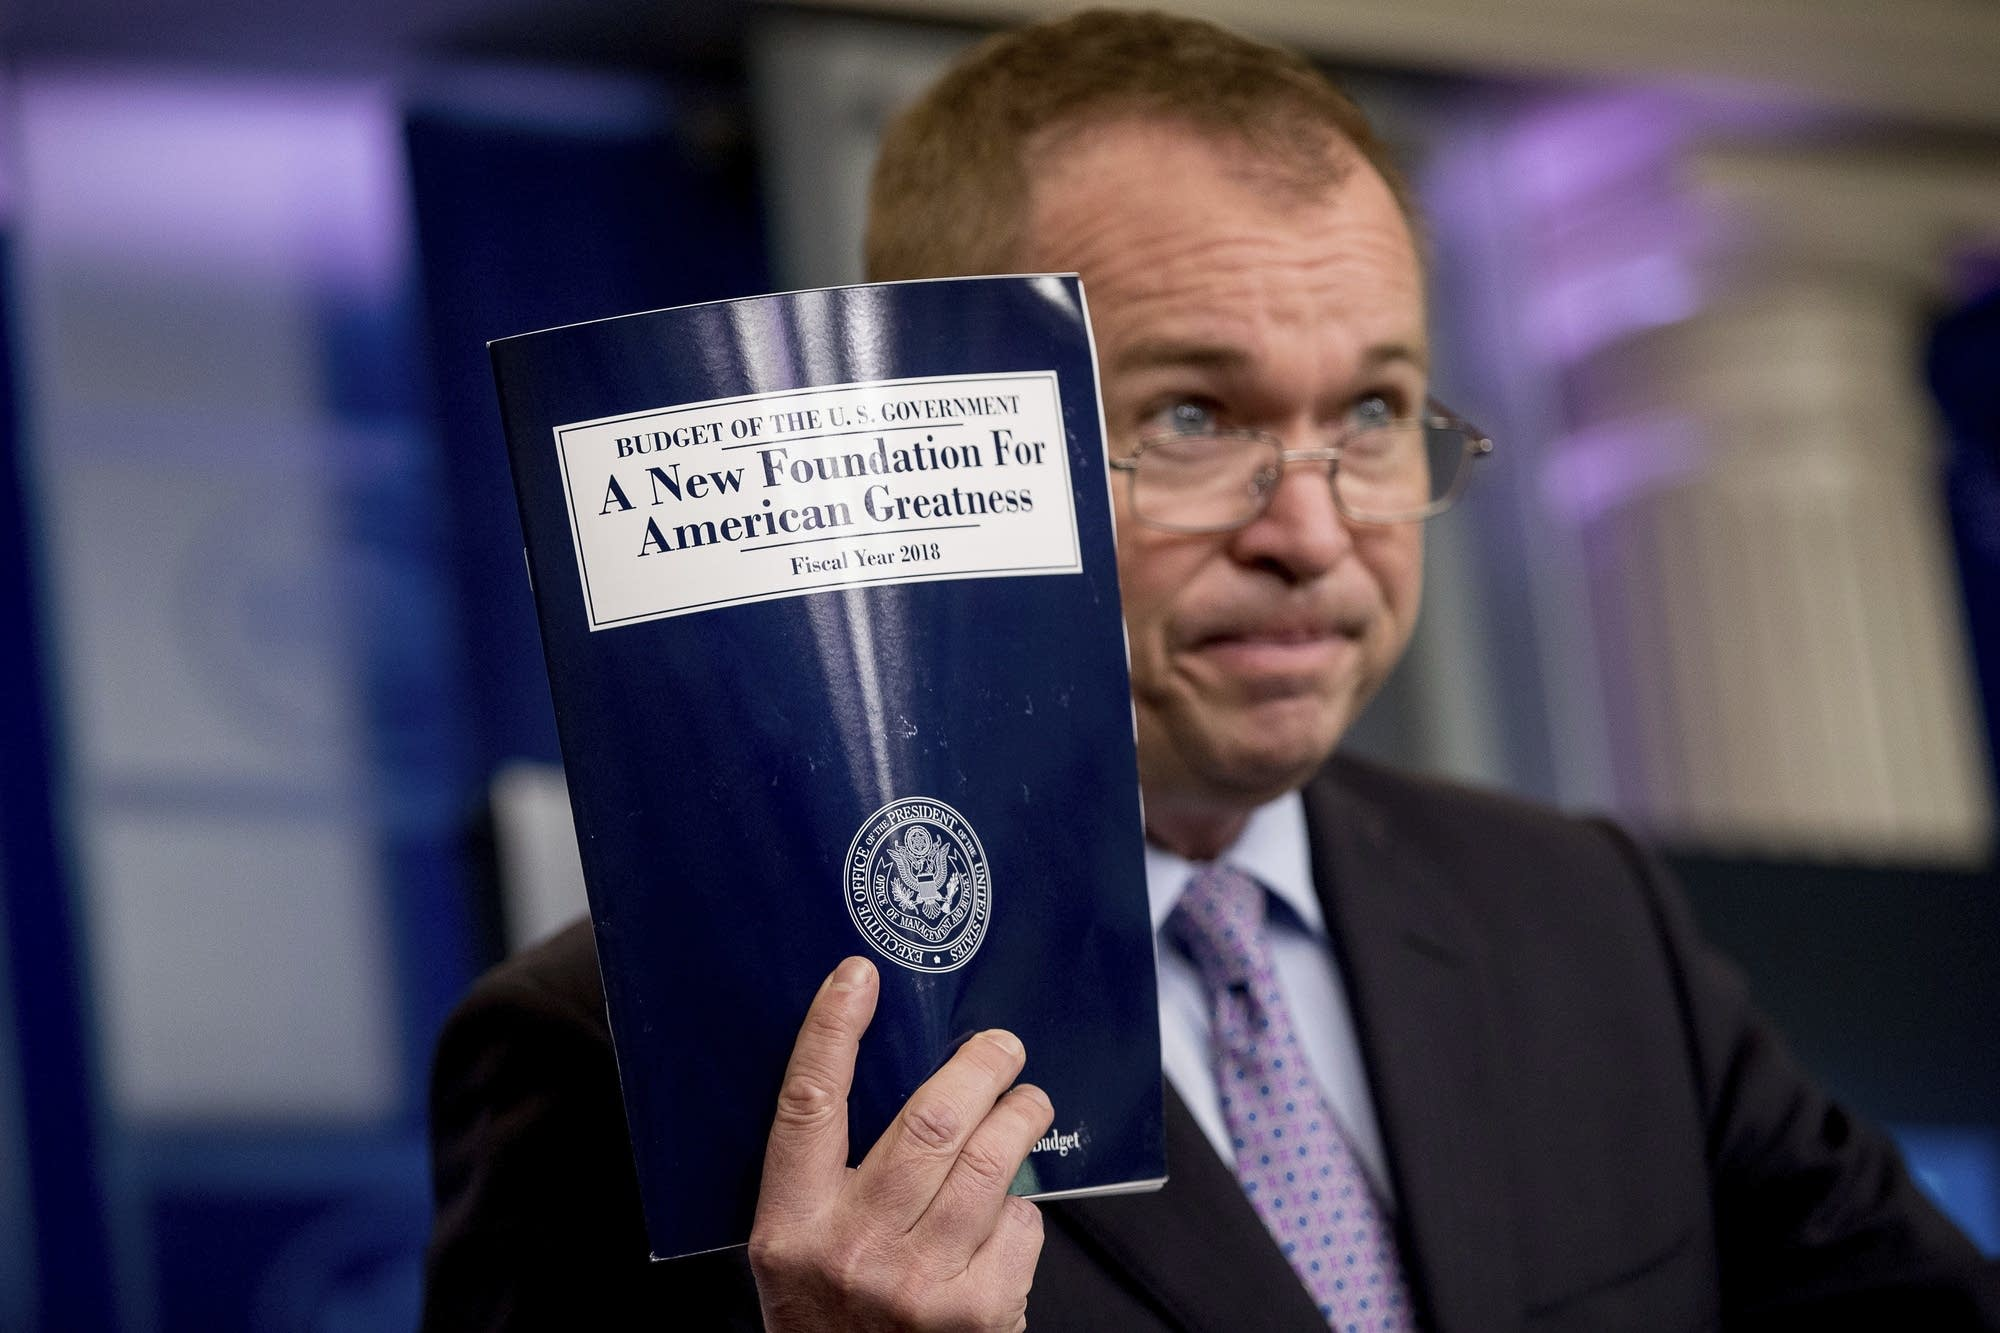 Budget Director Mick Mulvaney holds up a copy of proposed budget.